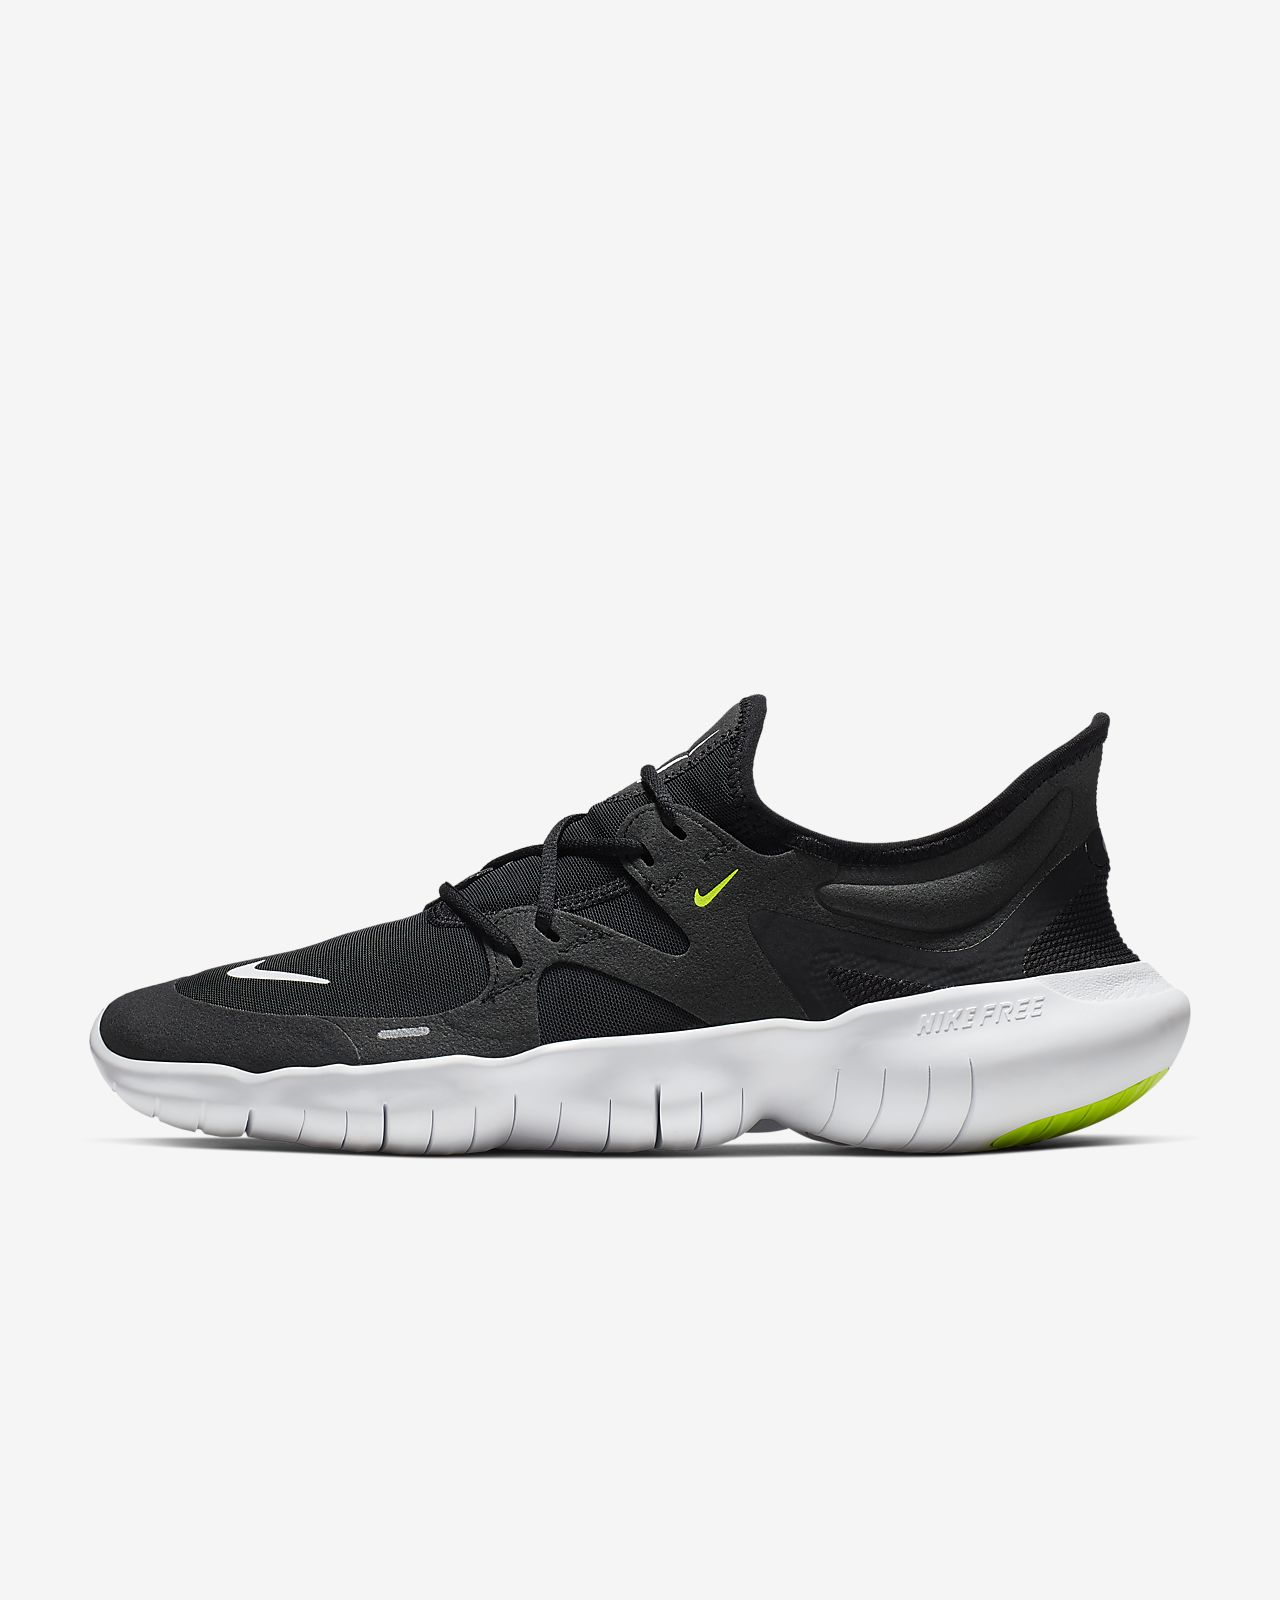 buy online 622d9 5d7c6 Men s Running Shoe. Nike Free RN 5.0